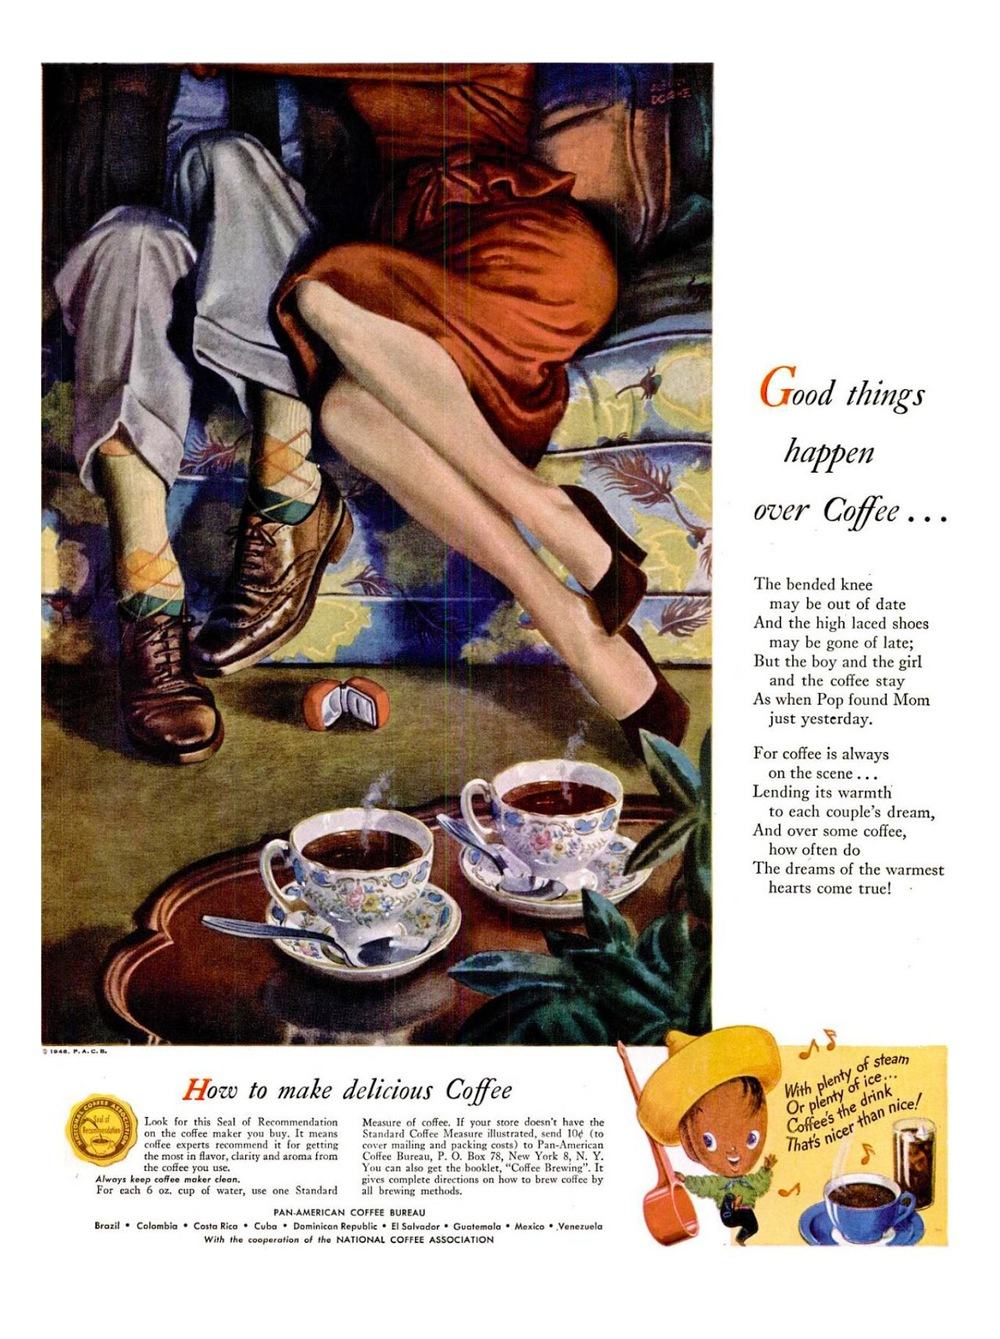 1948-1 Pan-American Coffee Bureau LIFE Jan 12, 1948 ~ Albert Dorne.jpeg